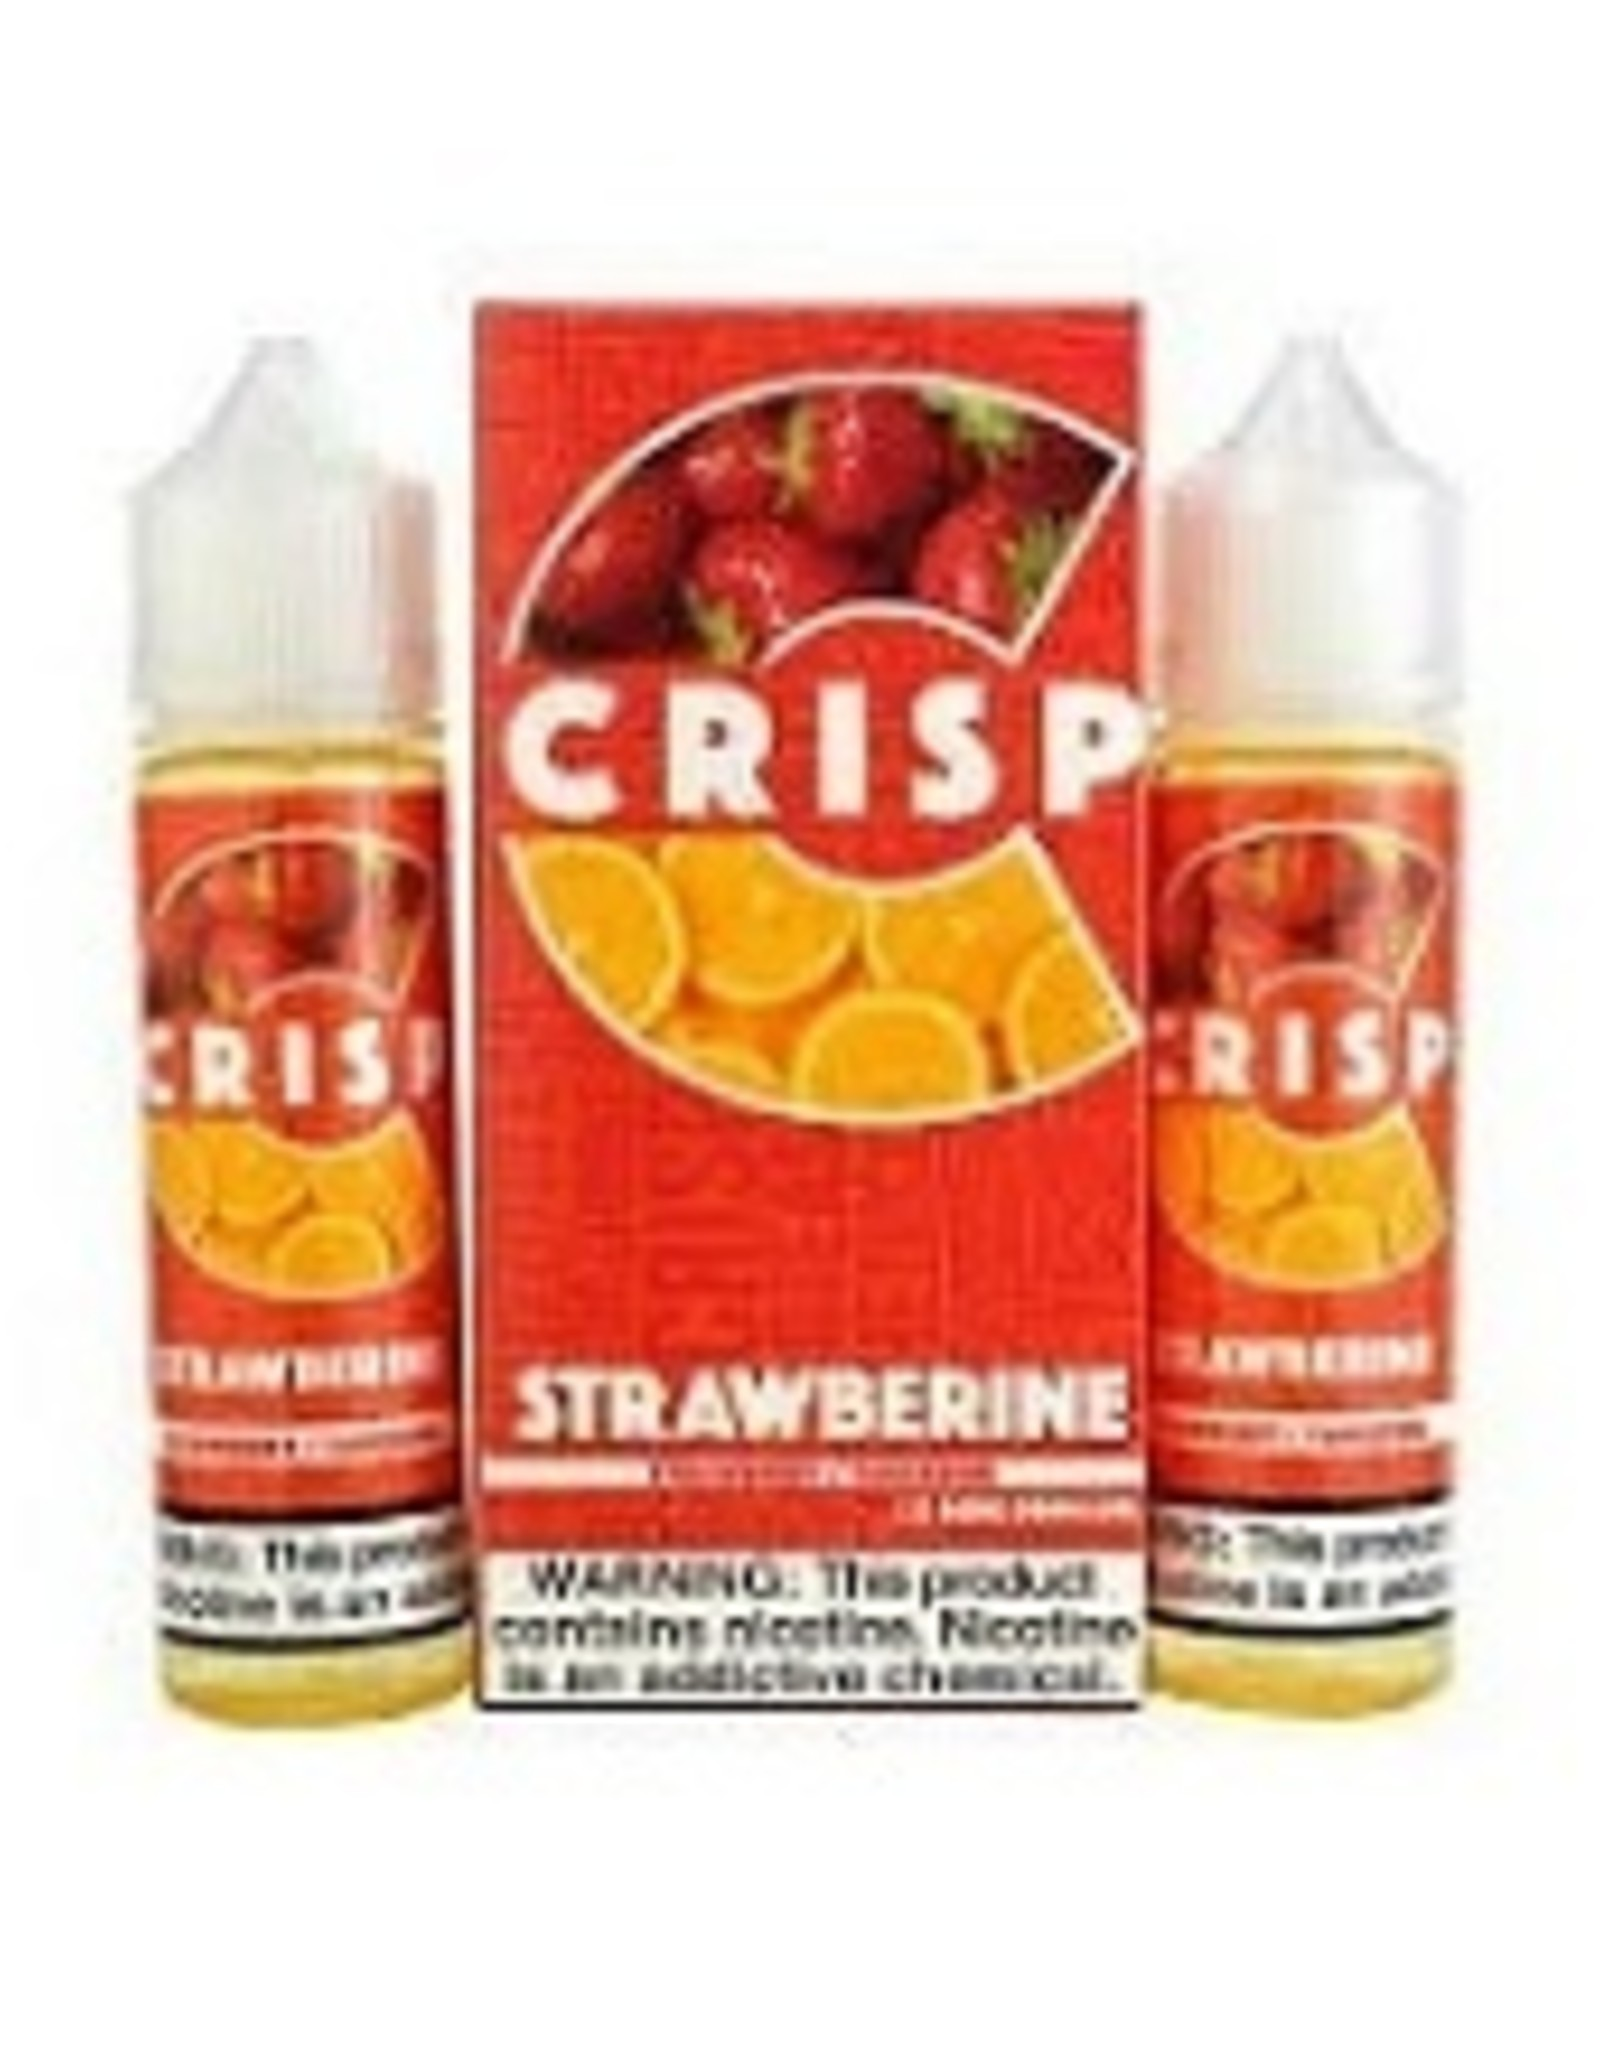 Strawberine By Crisp